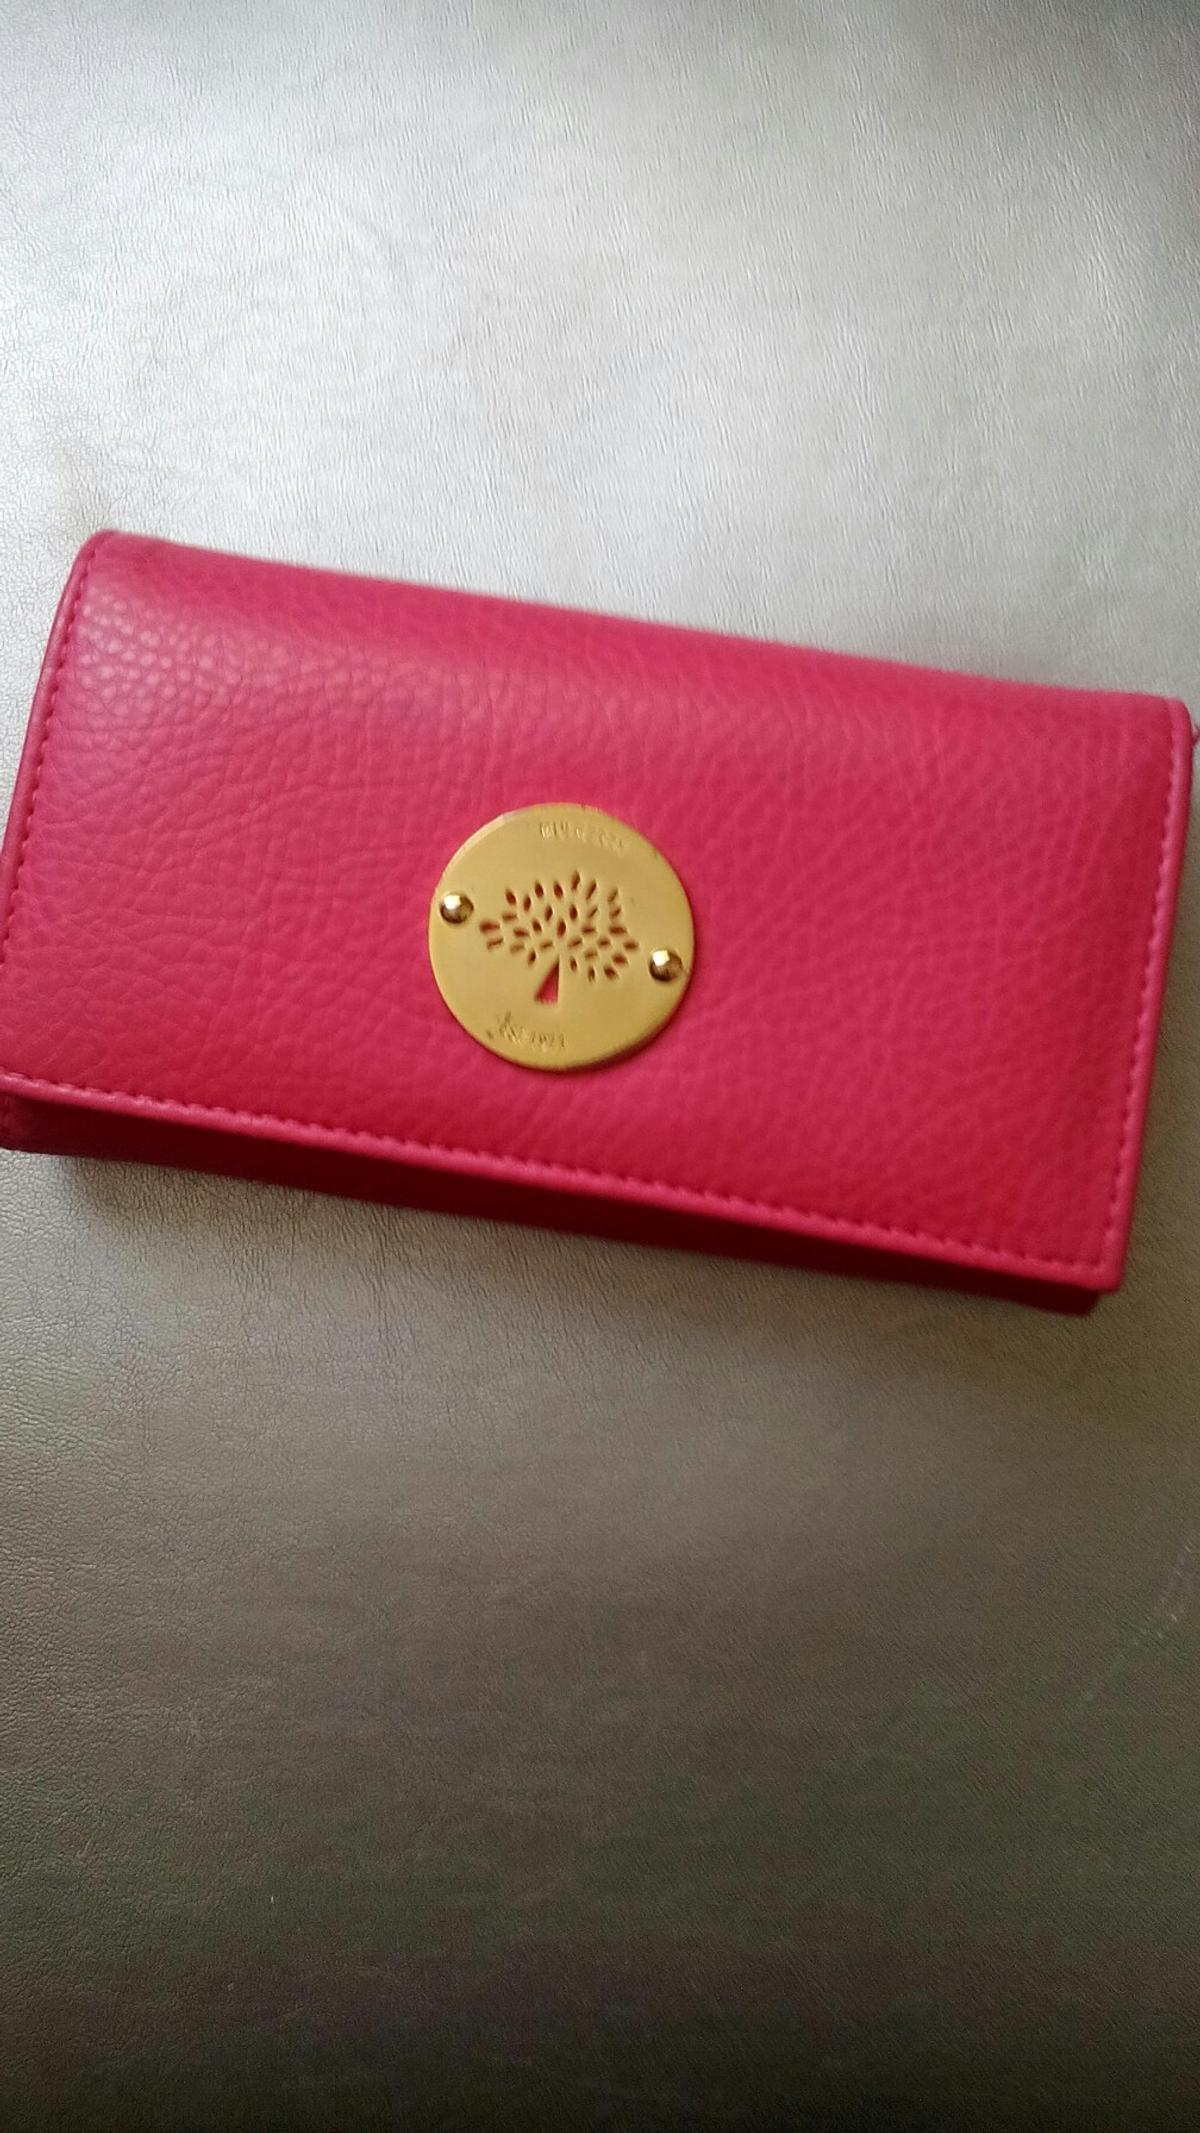 659044e0cce Mulberry Purse - Pink in DH5 Sunderland for £6.00 for sale - Shpock